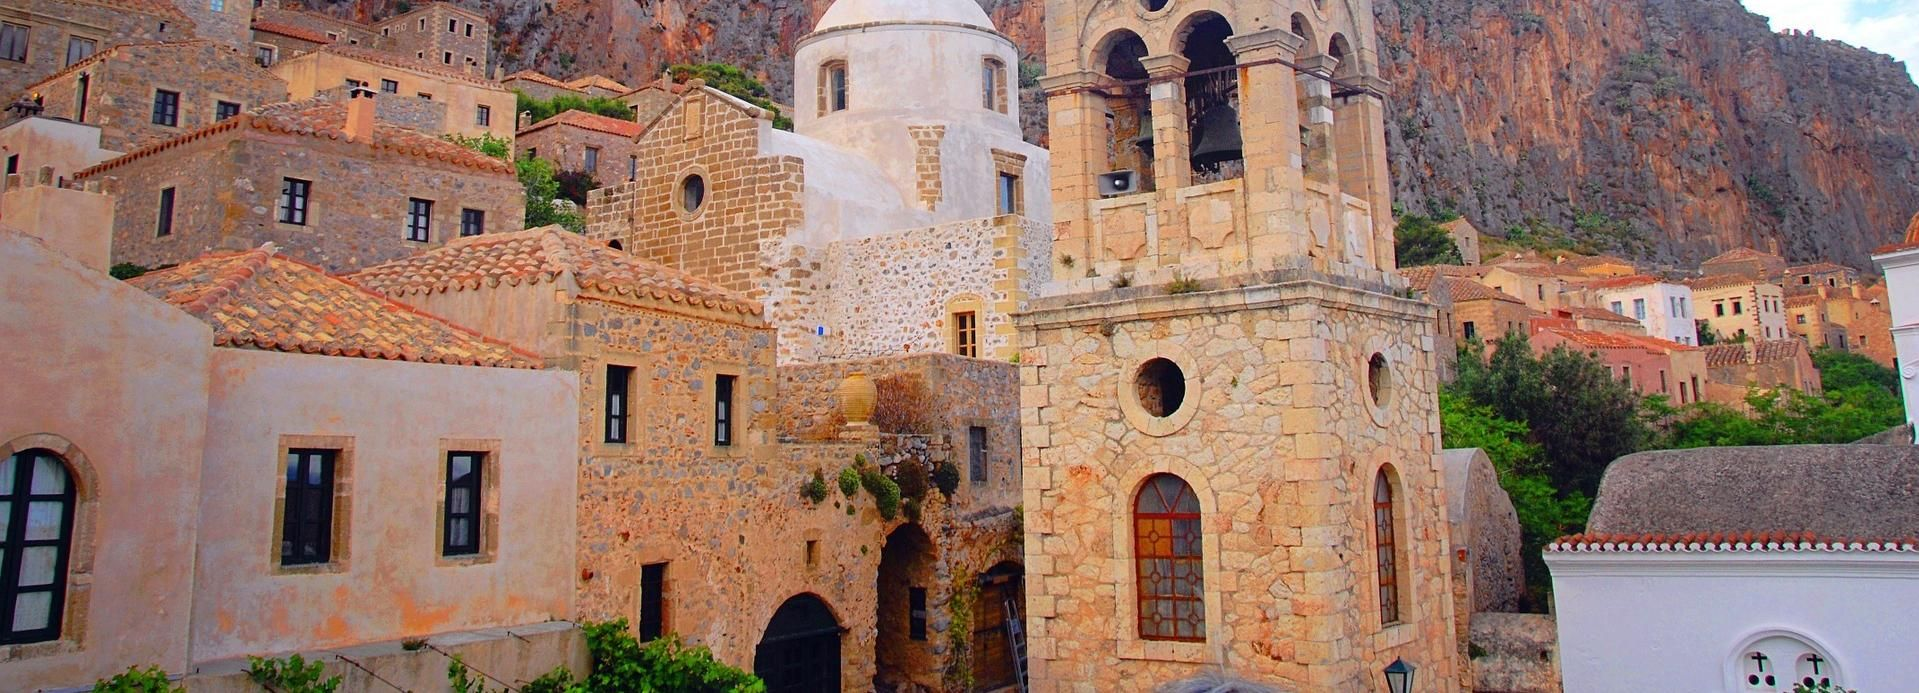 From Athens: 3-Days in Nafplio, Monemvasia & Mani with Hotel